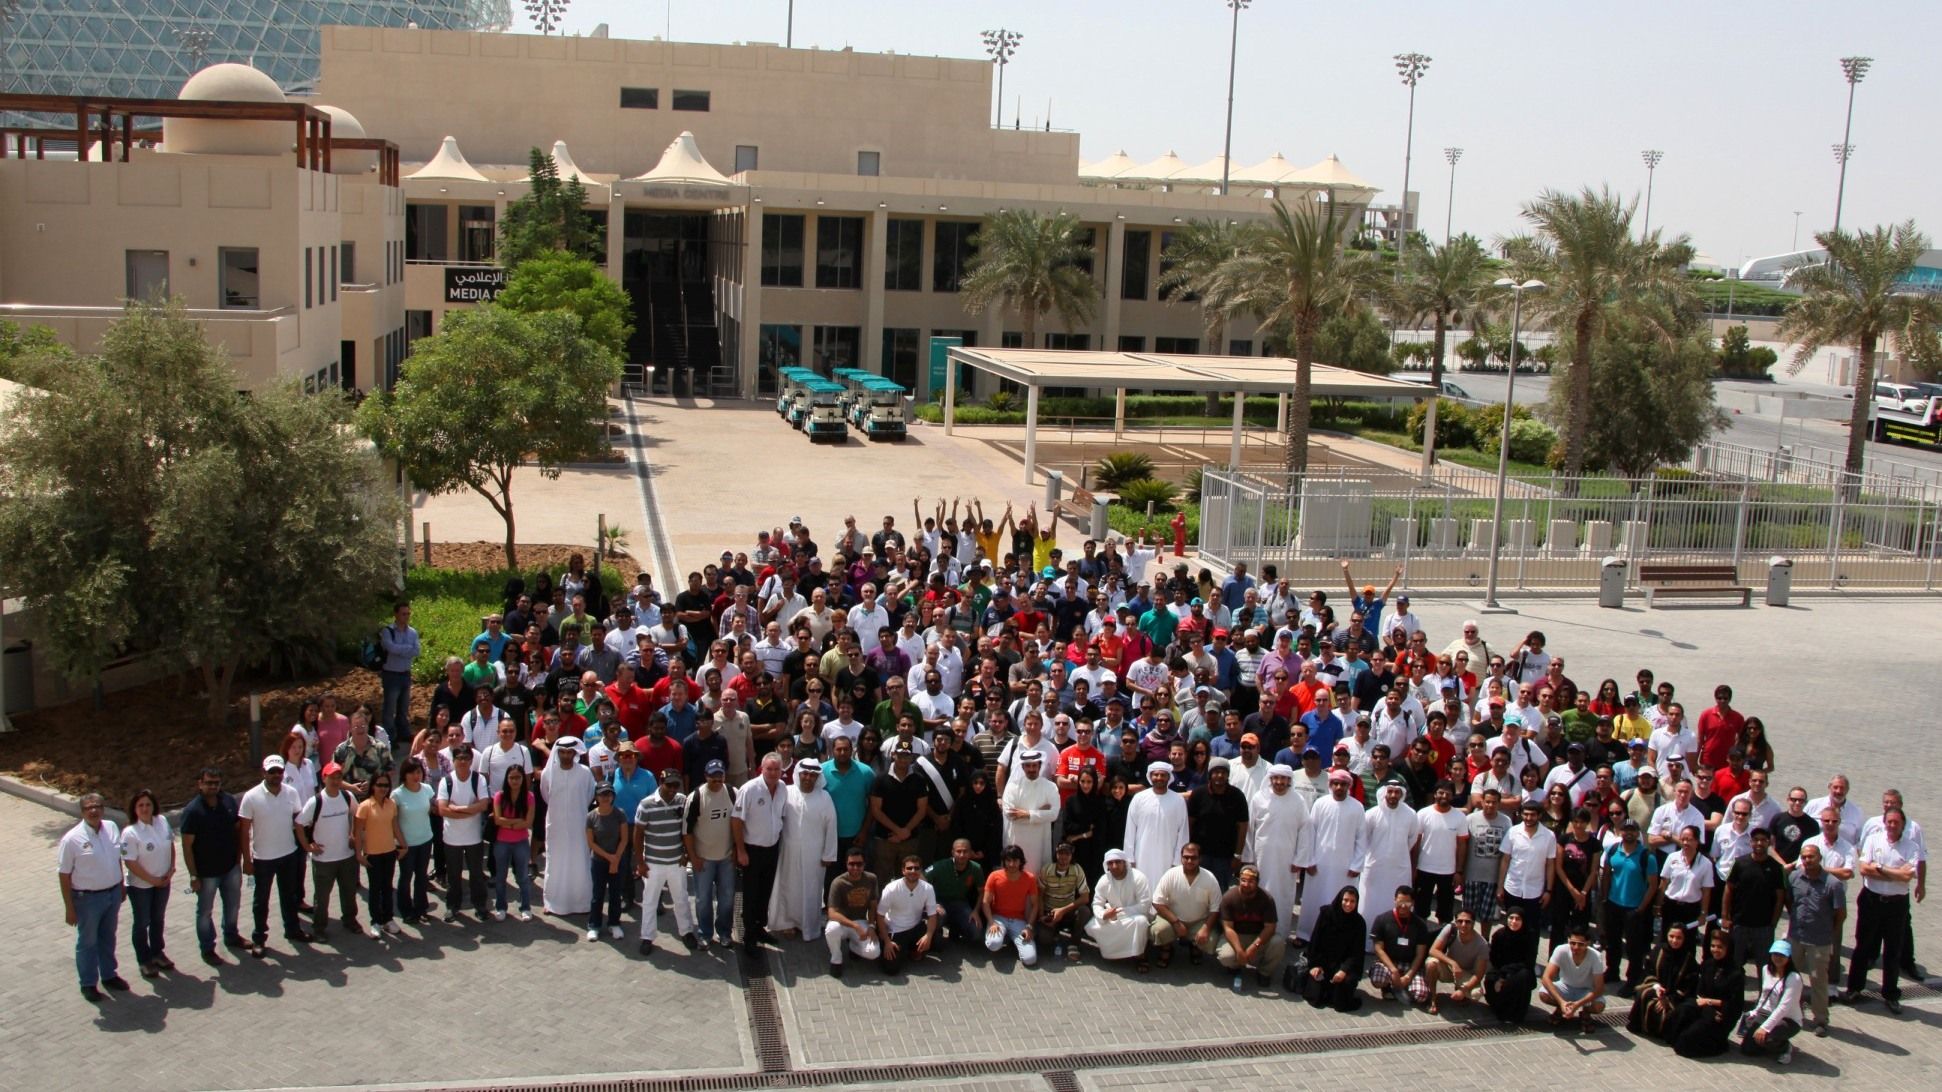 ATC UAE: Recruitment drive for Emirati marshals pays off as over one hundred sign up as volunteers